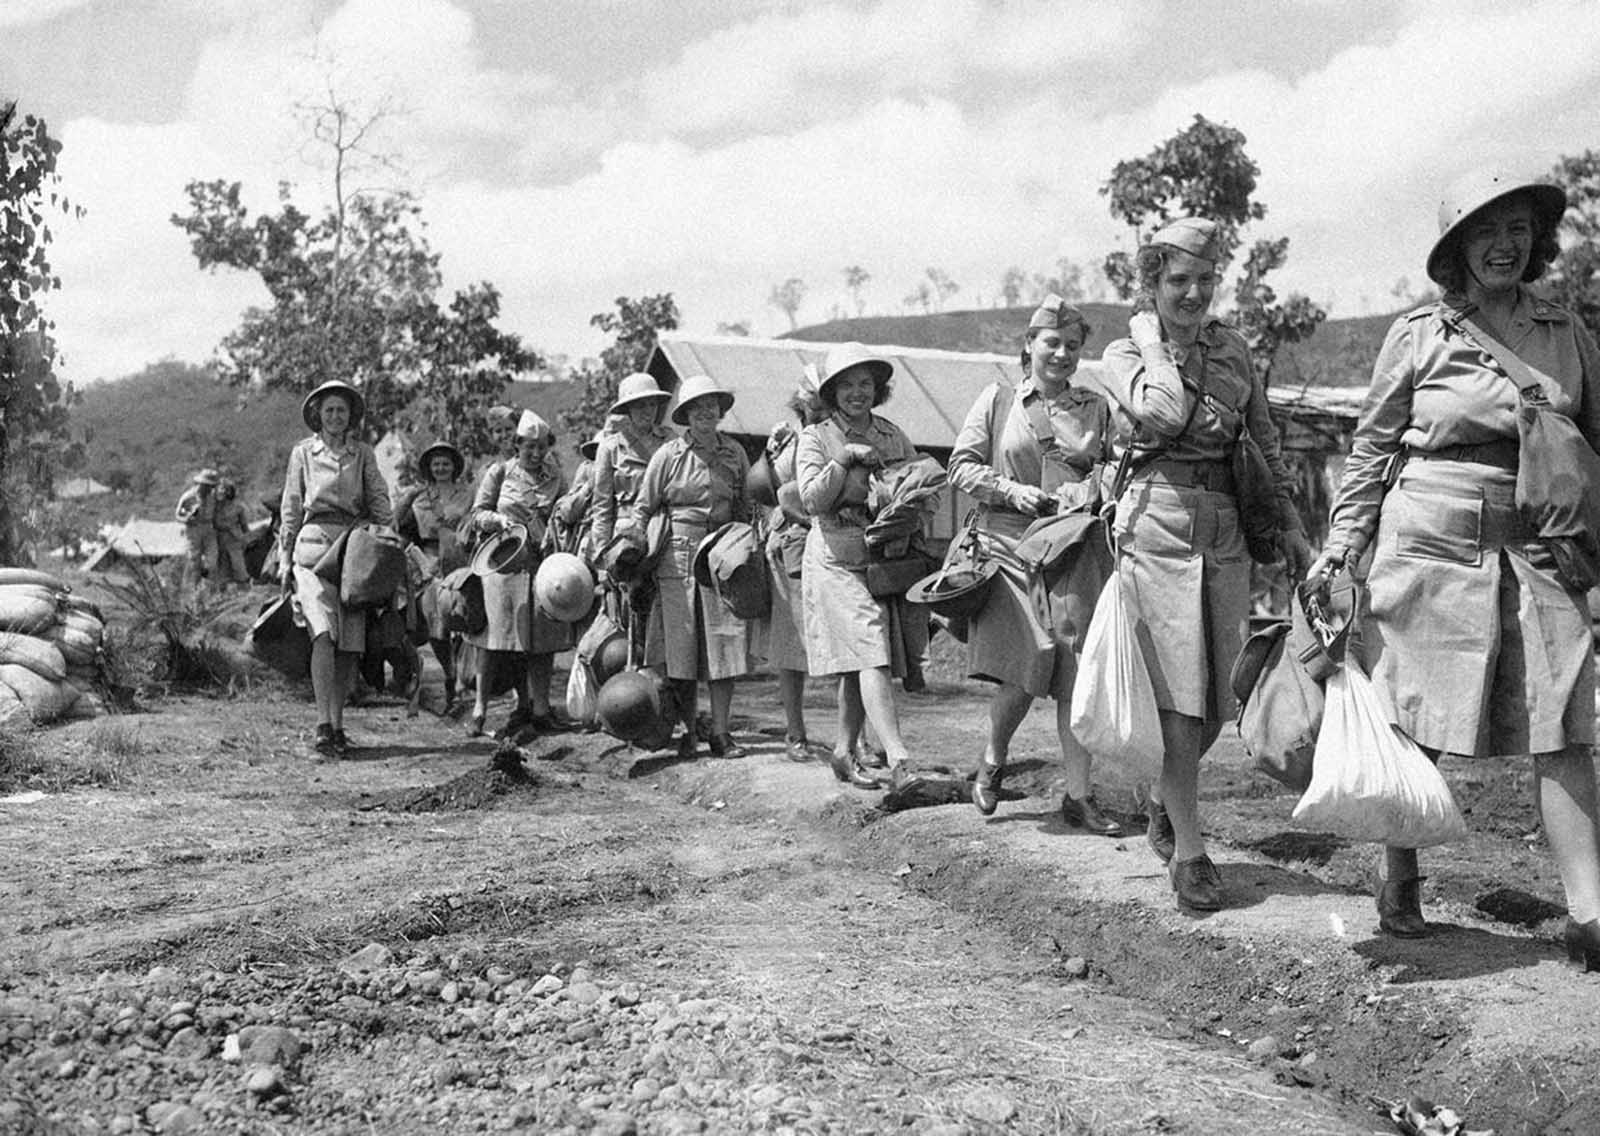 The first contingent of U.S. Army nurses to be sent to an Allied advanced base in New Guinea carry their equipment as they march single file to their quarter on November 12, 1942. The first four in line from right are: Edith Whittaker, Pawtucket, Rhode Island,; Ruth Baucher, Wooster, O.; Helen Lawson, Athens, Tennessee,; and Juanita Hamilton, of Hendersonville, North Carolina.